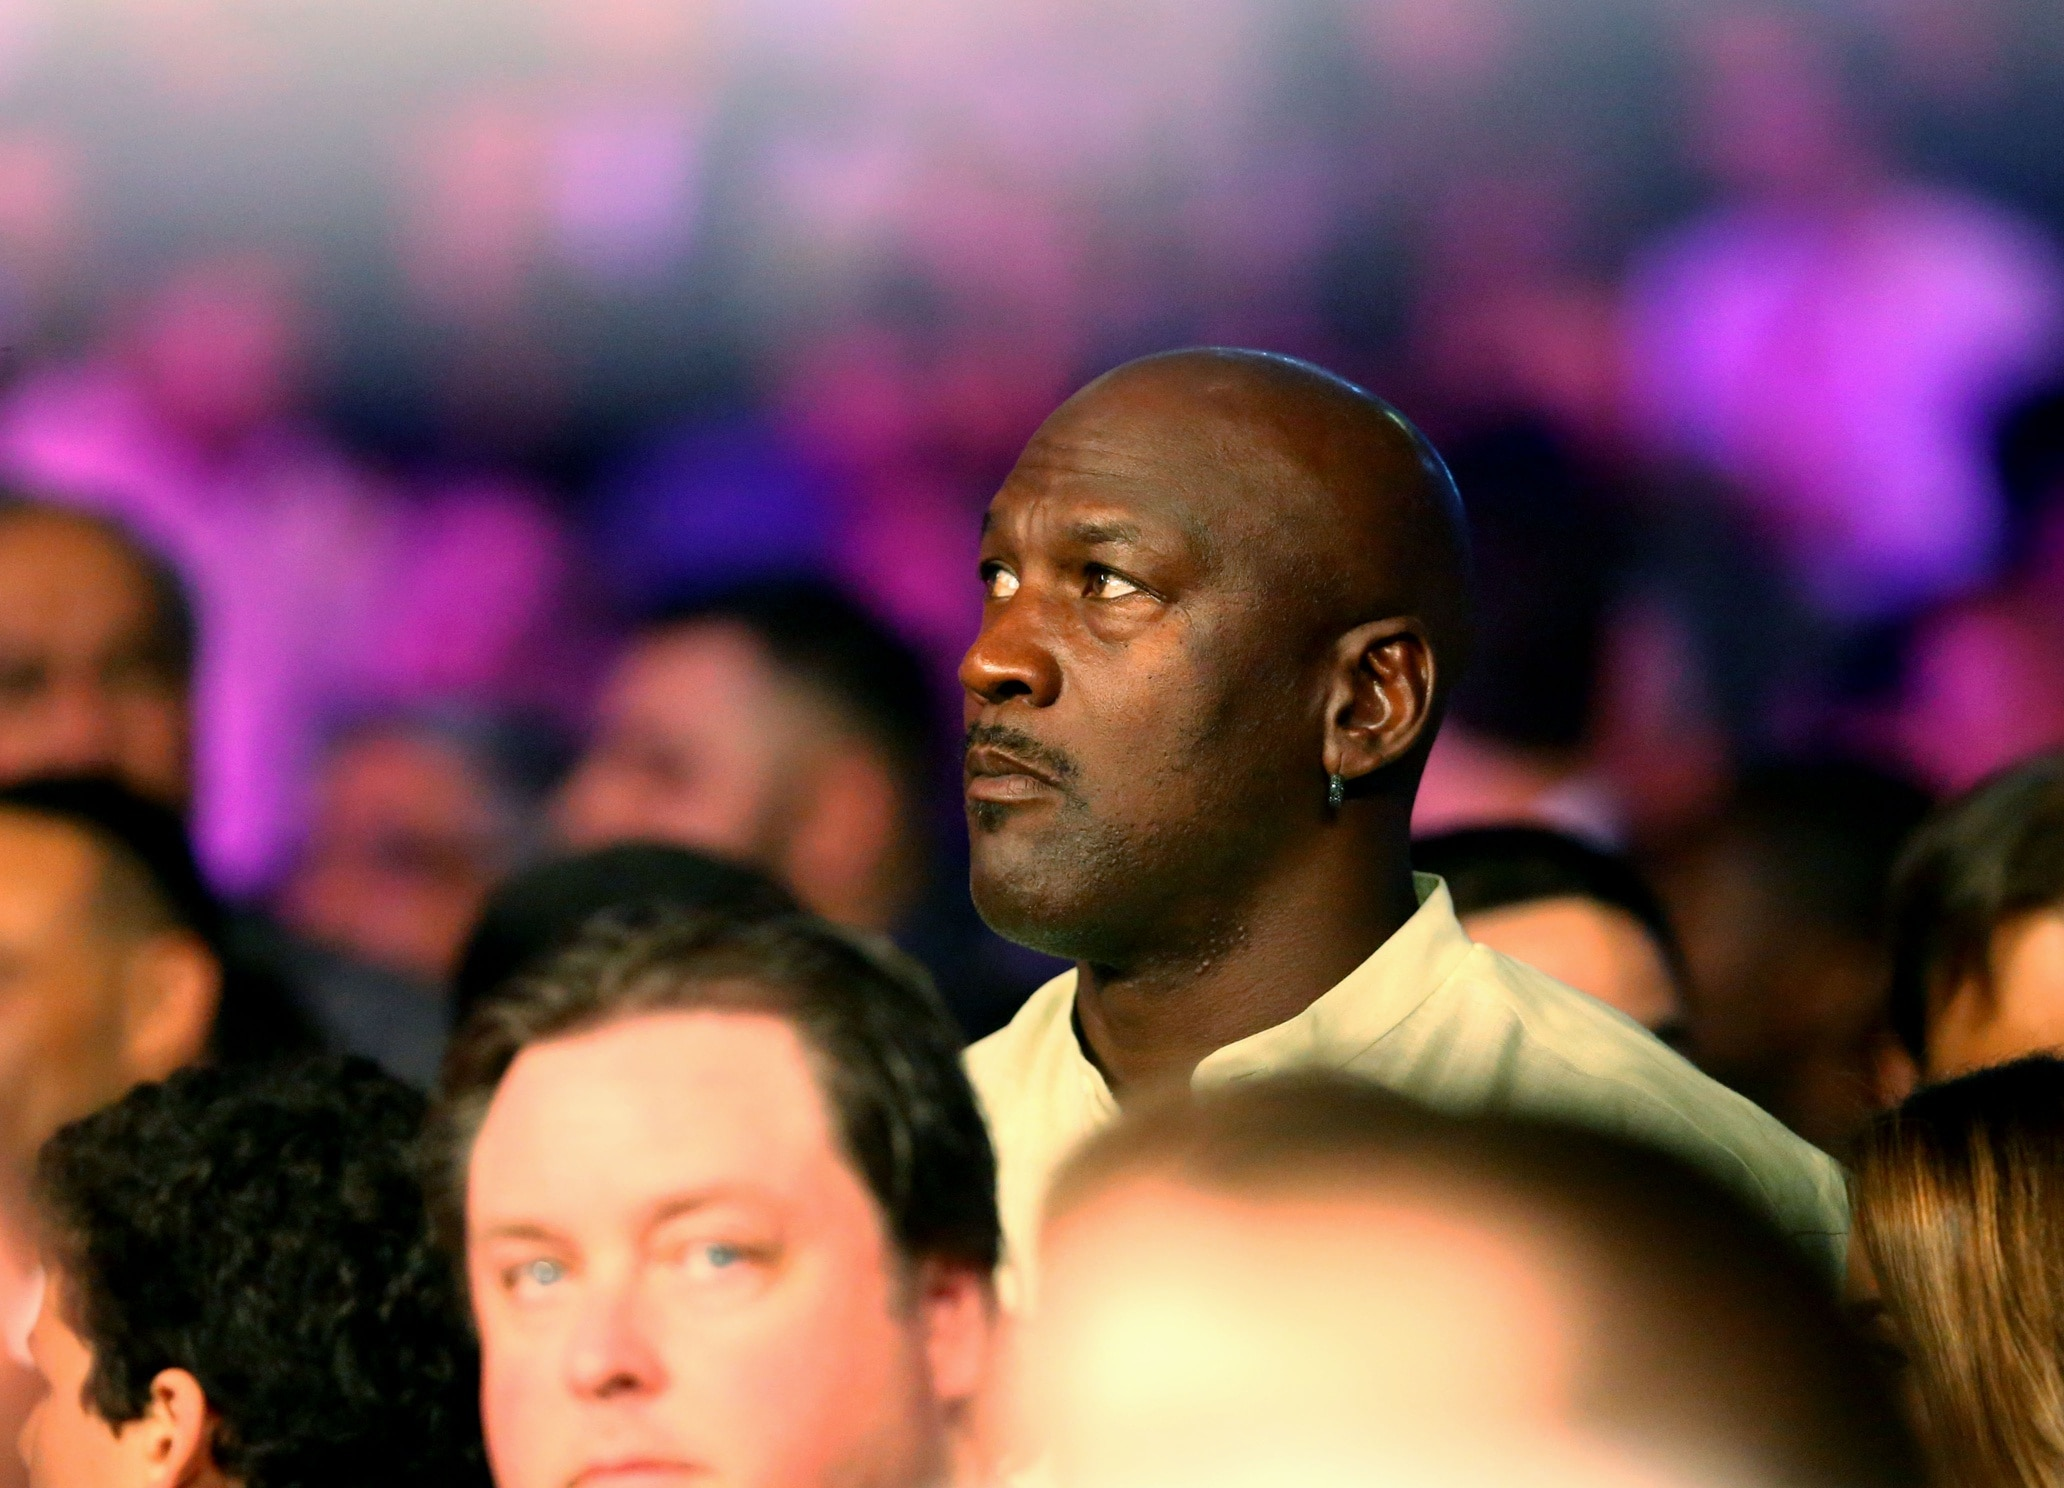 NBA Hall of Famer Michael Jordan before a boxing match in Las Vegas